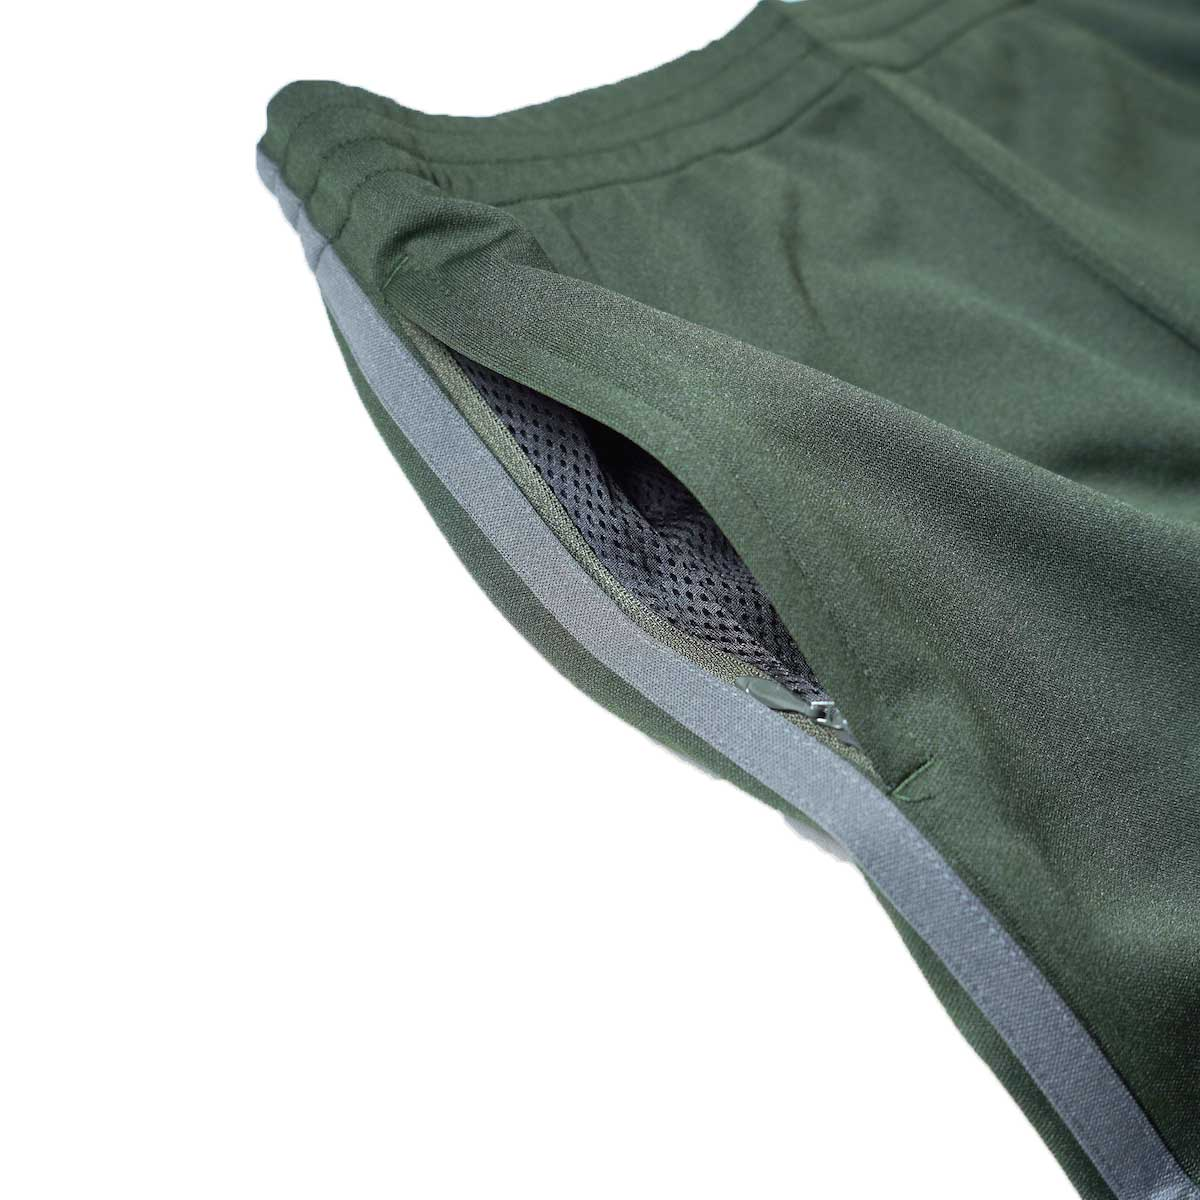 South2 West8 / Trainer Pants - Poly Smooth (Green)サイドポケット